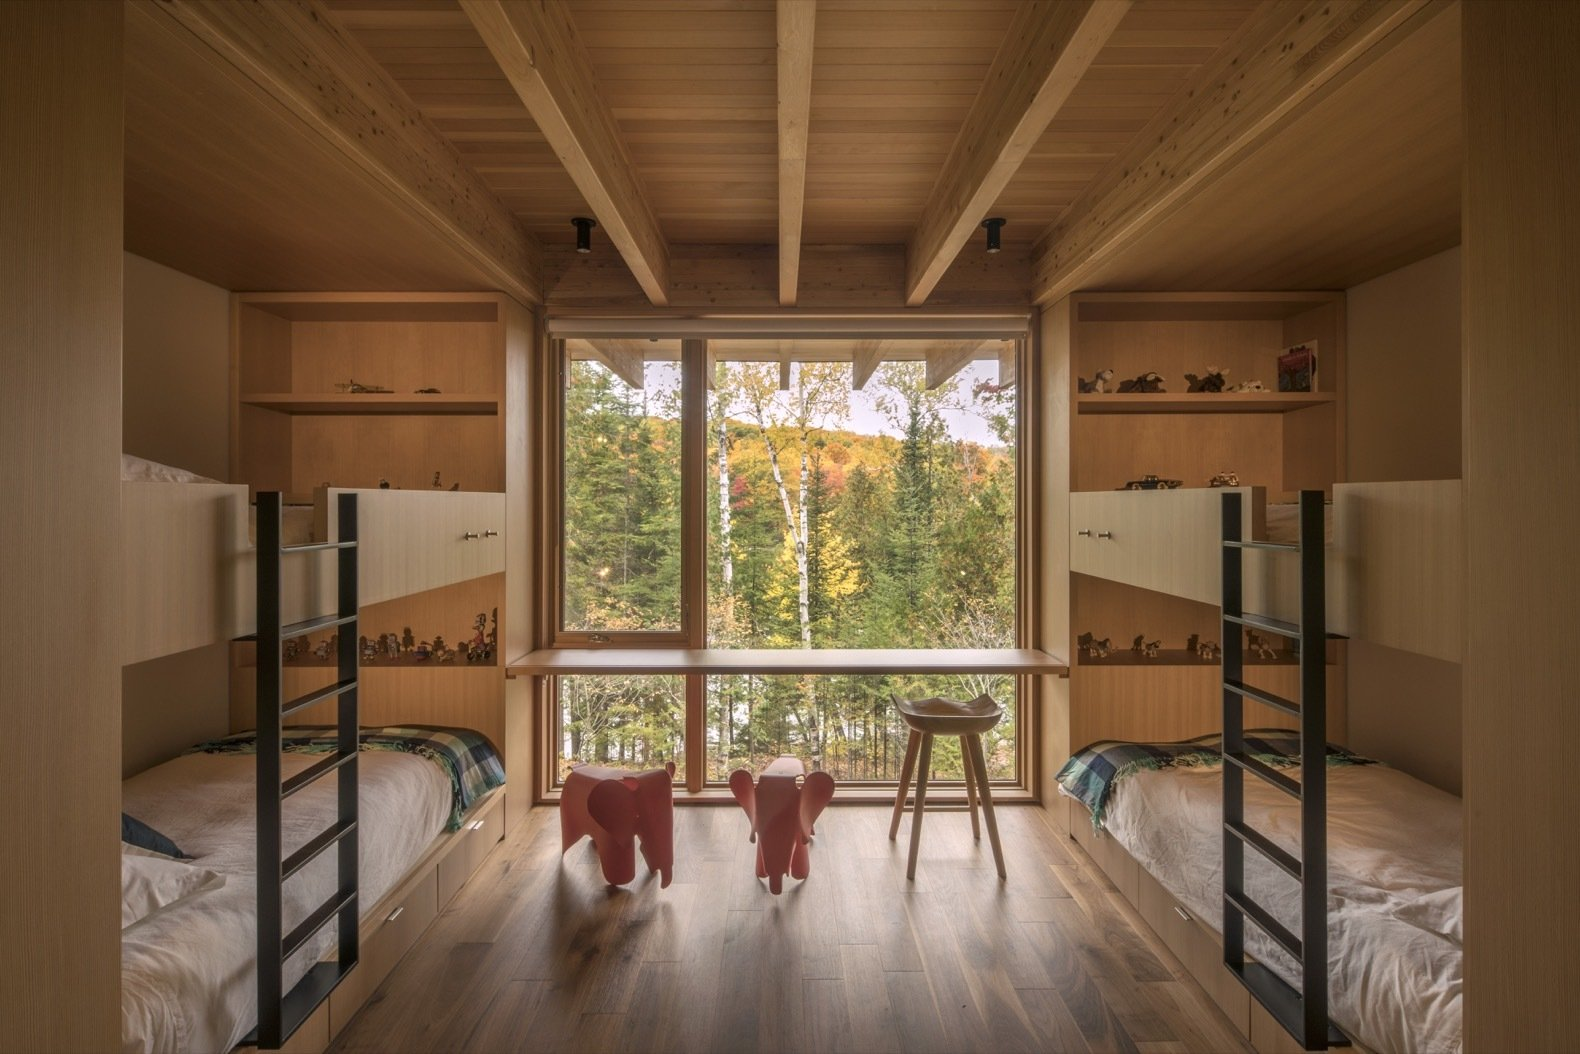 Kids, Chair, Bunks, Shelves, Bedroom, Desk, Neutral, and Medium Hardwood Oversized sliding doors open to the bunk room with floor-to-ceiling windows overlooking the serene lake.    Kids Bedroom Neutral Shelves Photos from This Award-Winning Cabin Is a Relaxing Antidote to City Living